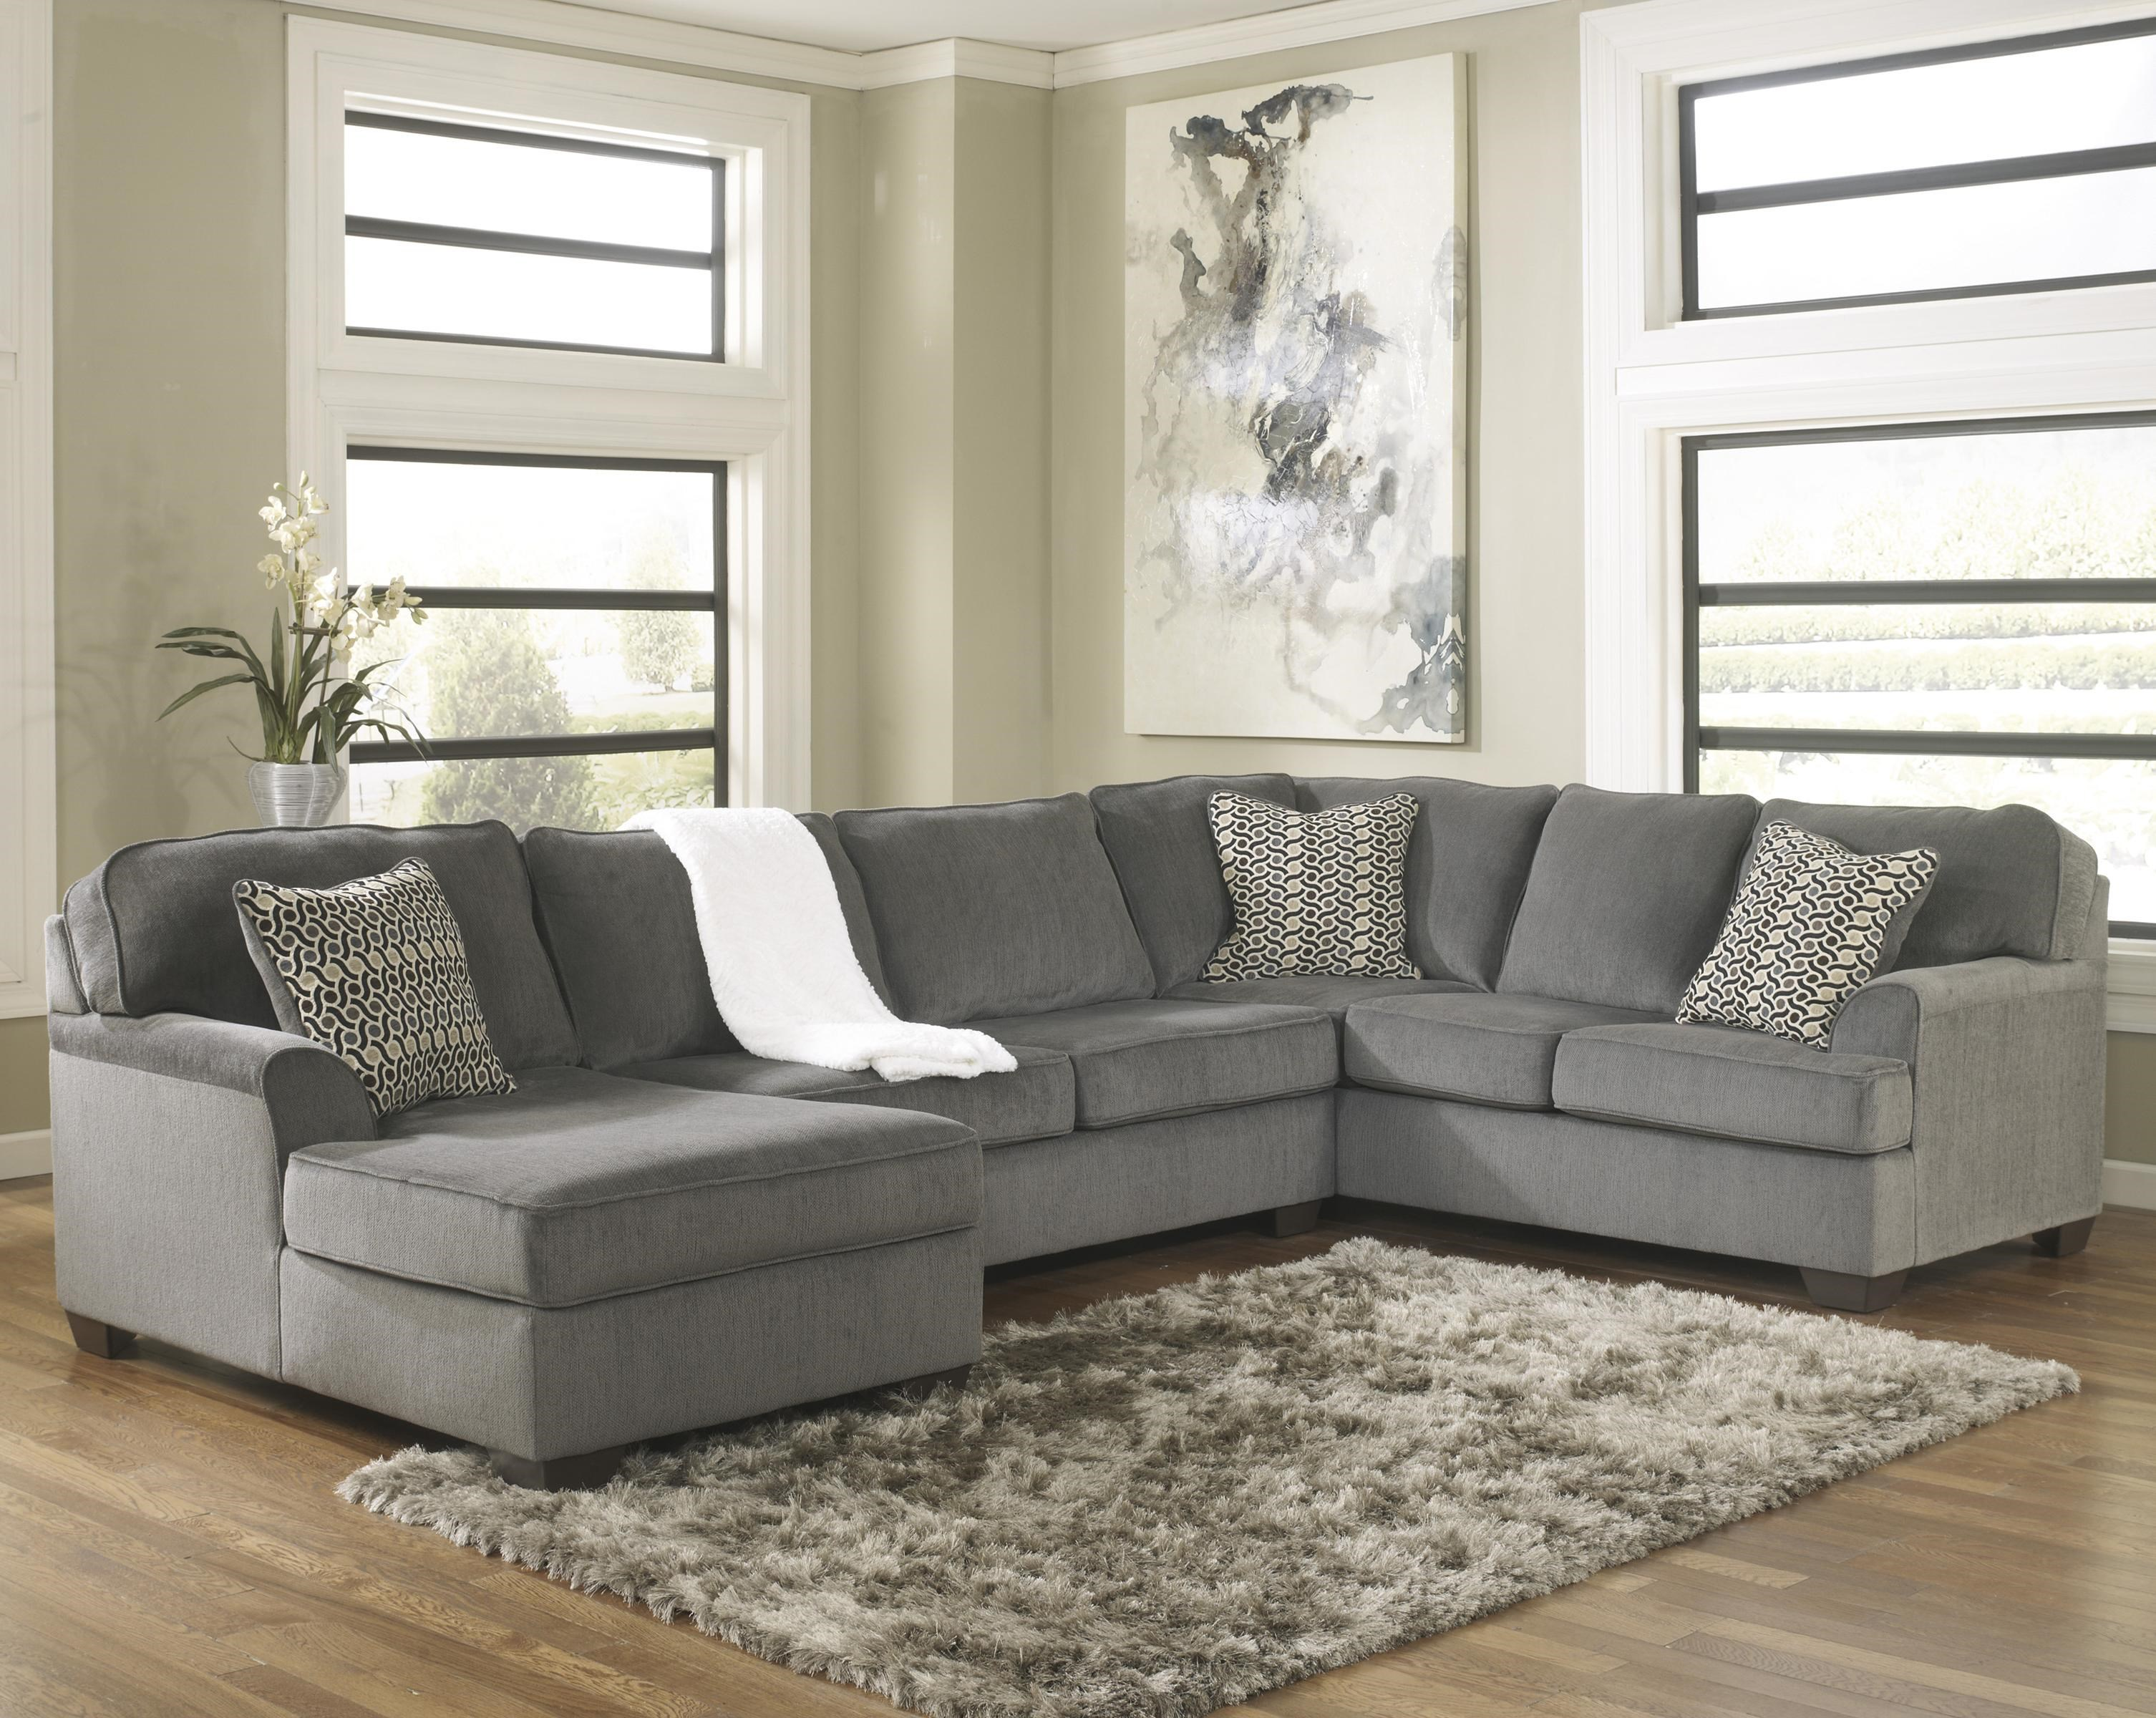 Ashley Furniture Loric   Smoke Contemporary 3 Piece Sectional With Left  Chaise   Furniture And ApplianceMart   Sofa Sectional